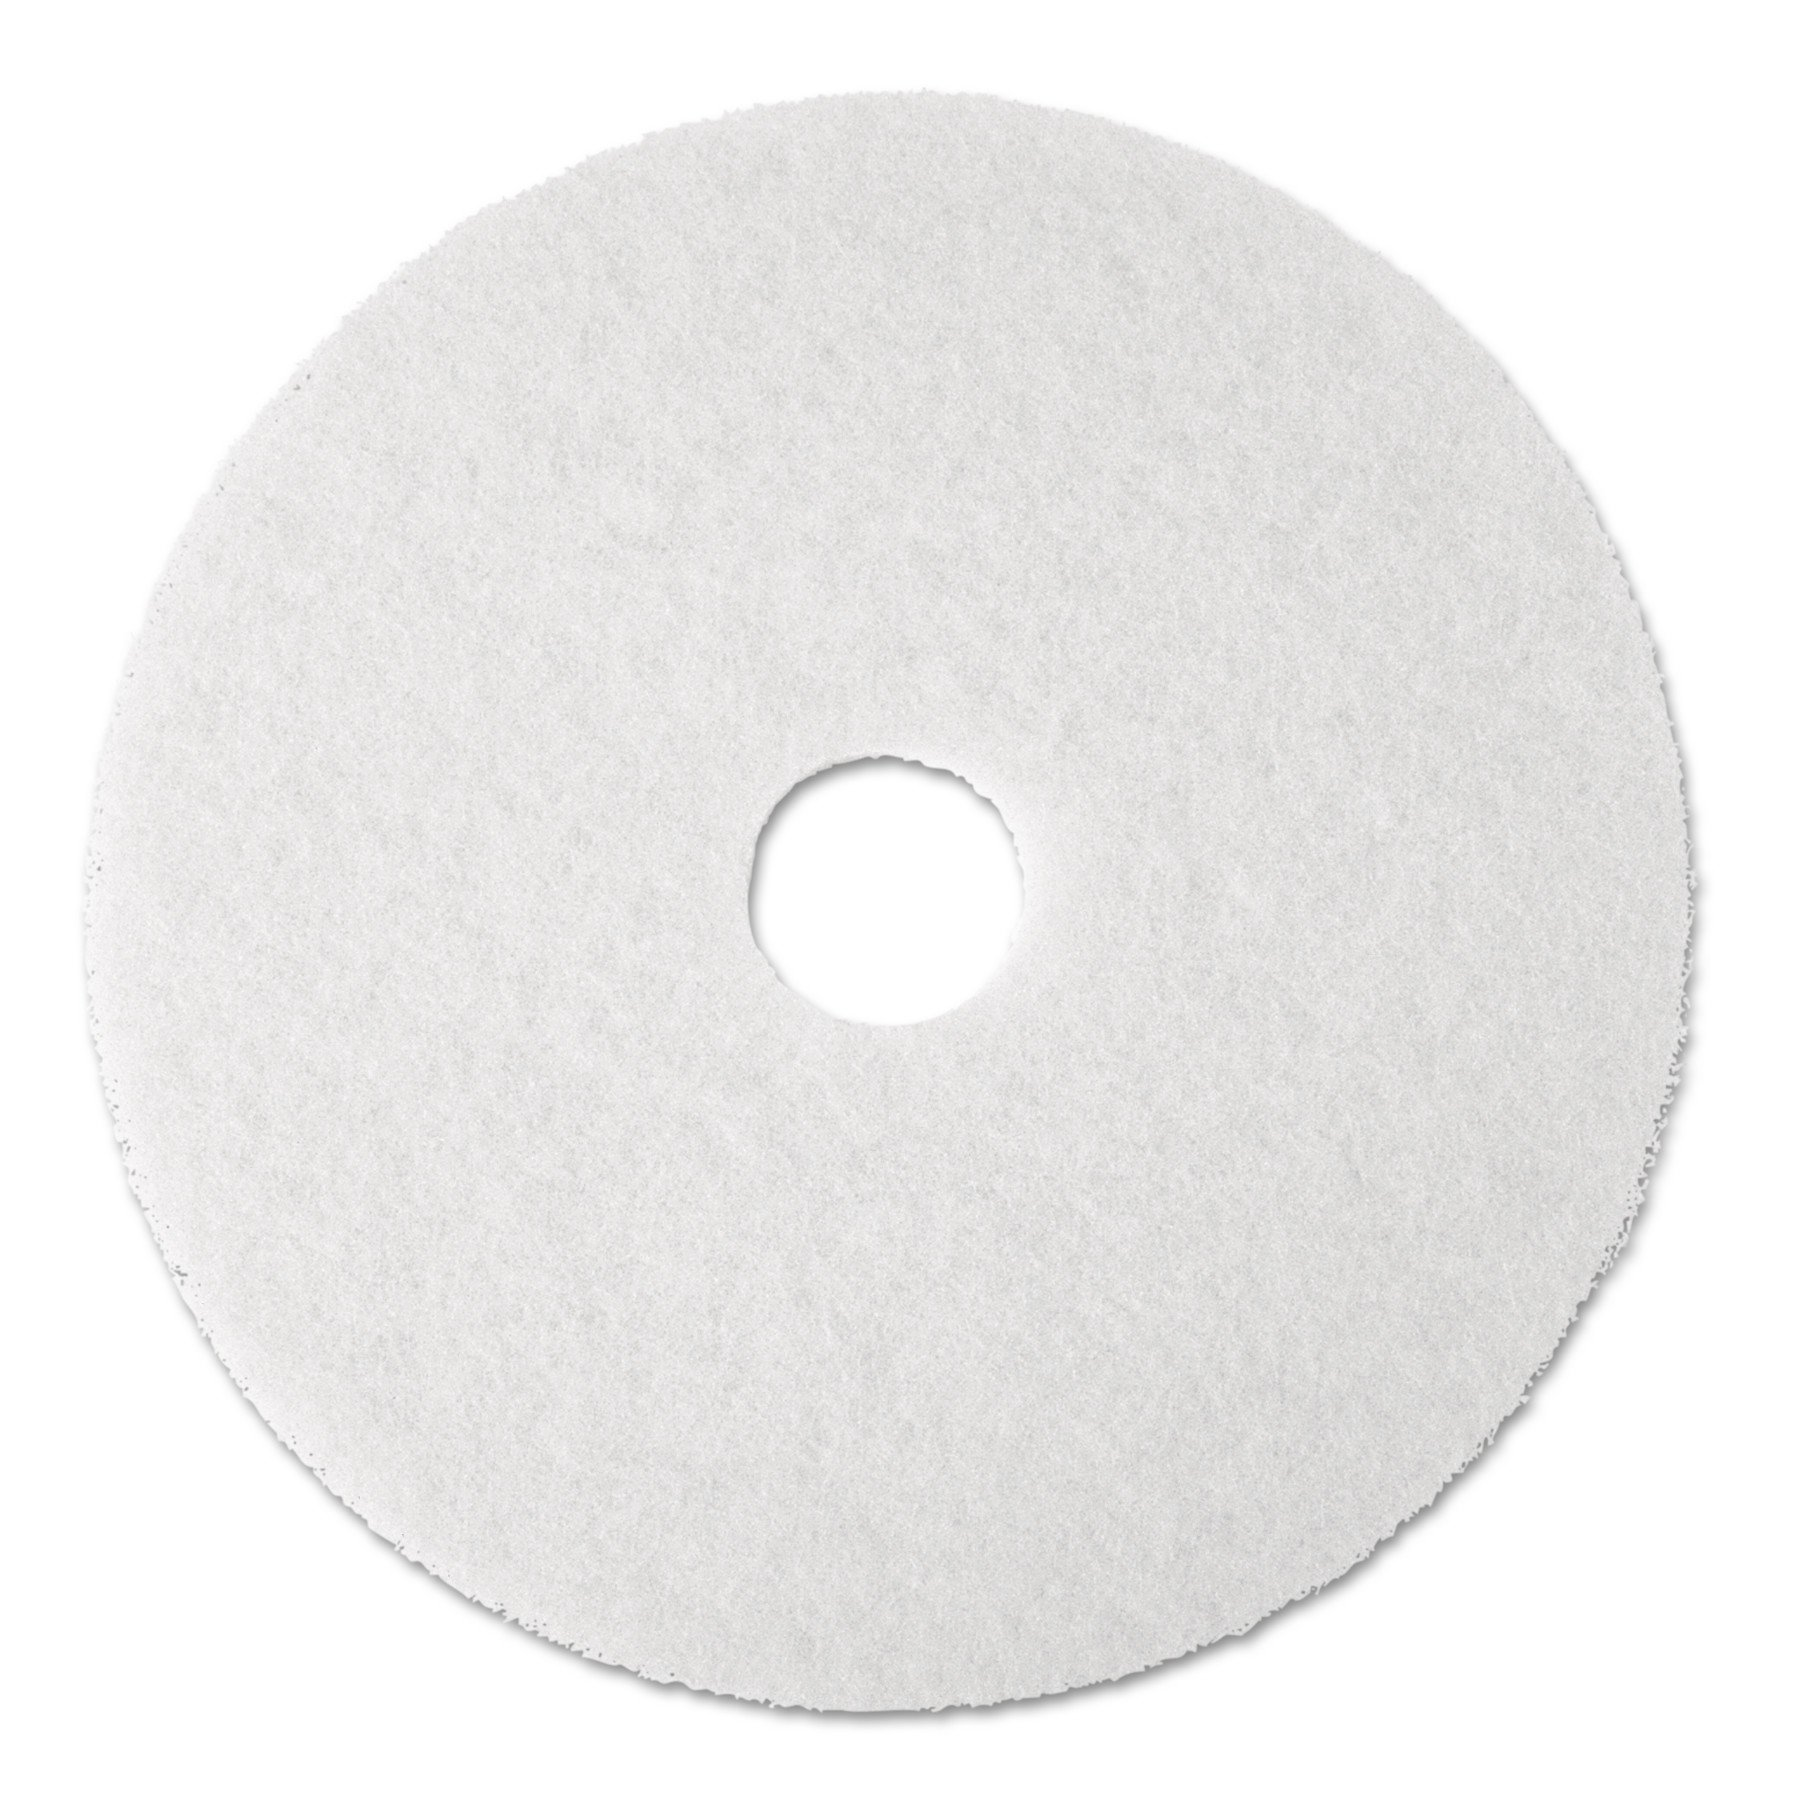 Premiere Pads PAD 4019 WHI Floor Polishing Pad, 19'' Diameter, White (Case of 5)